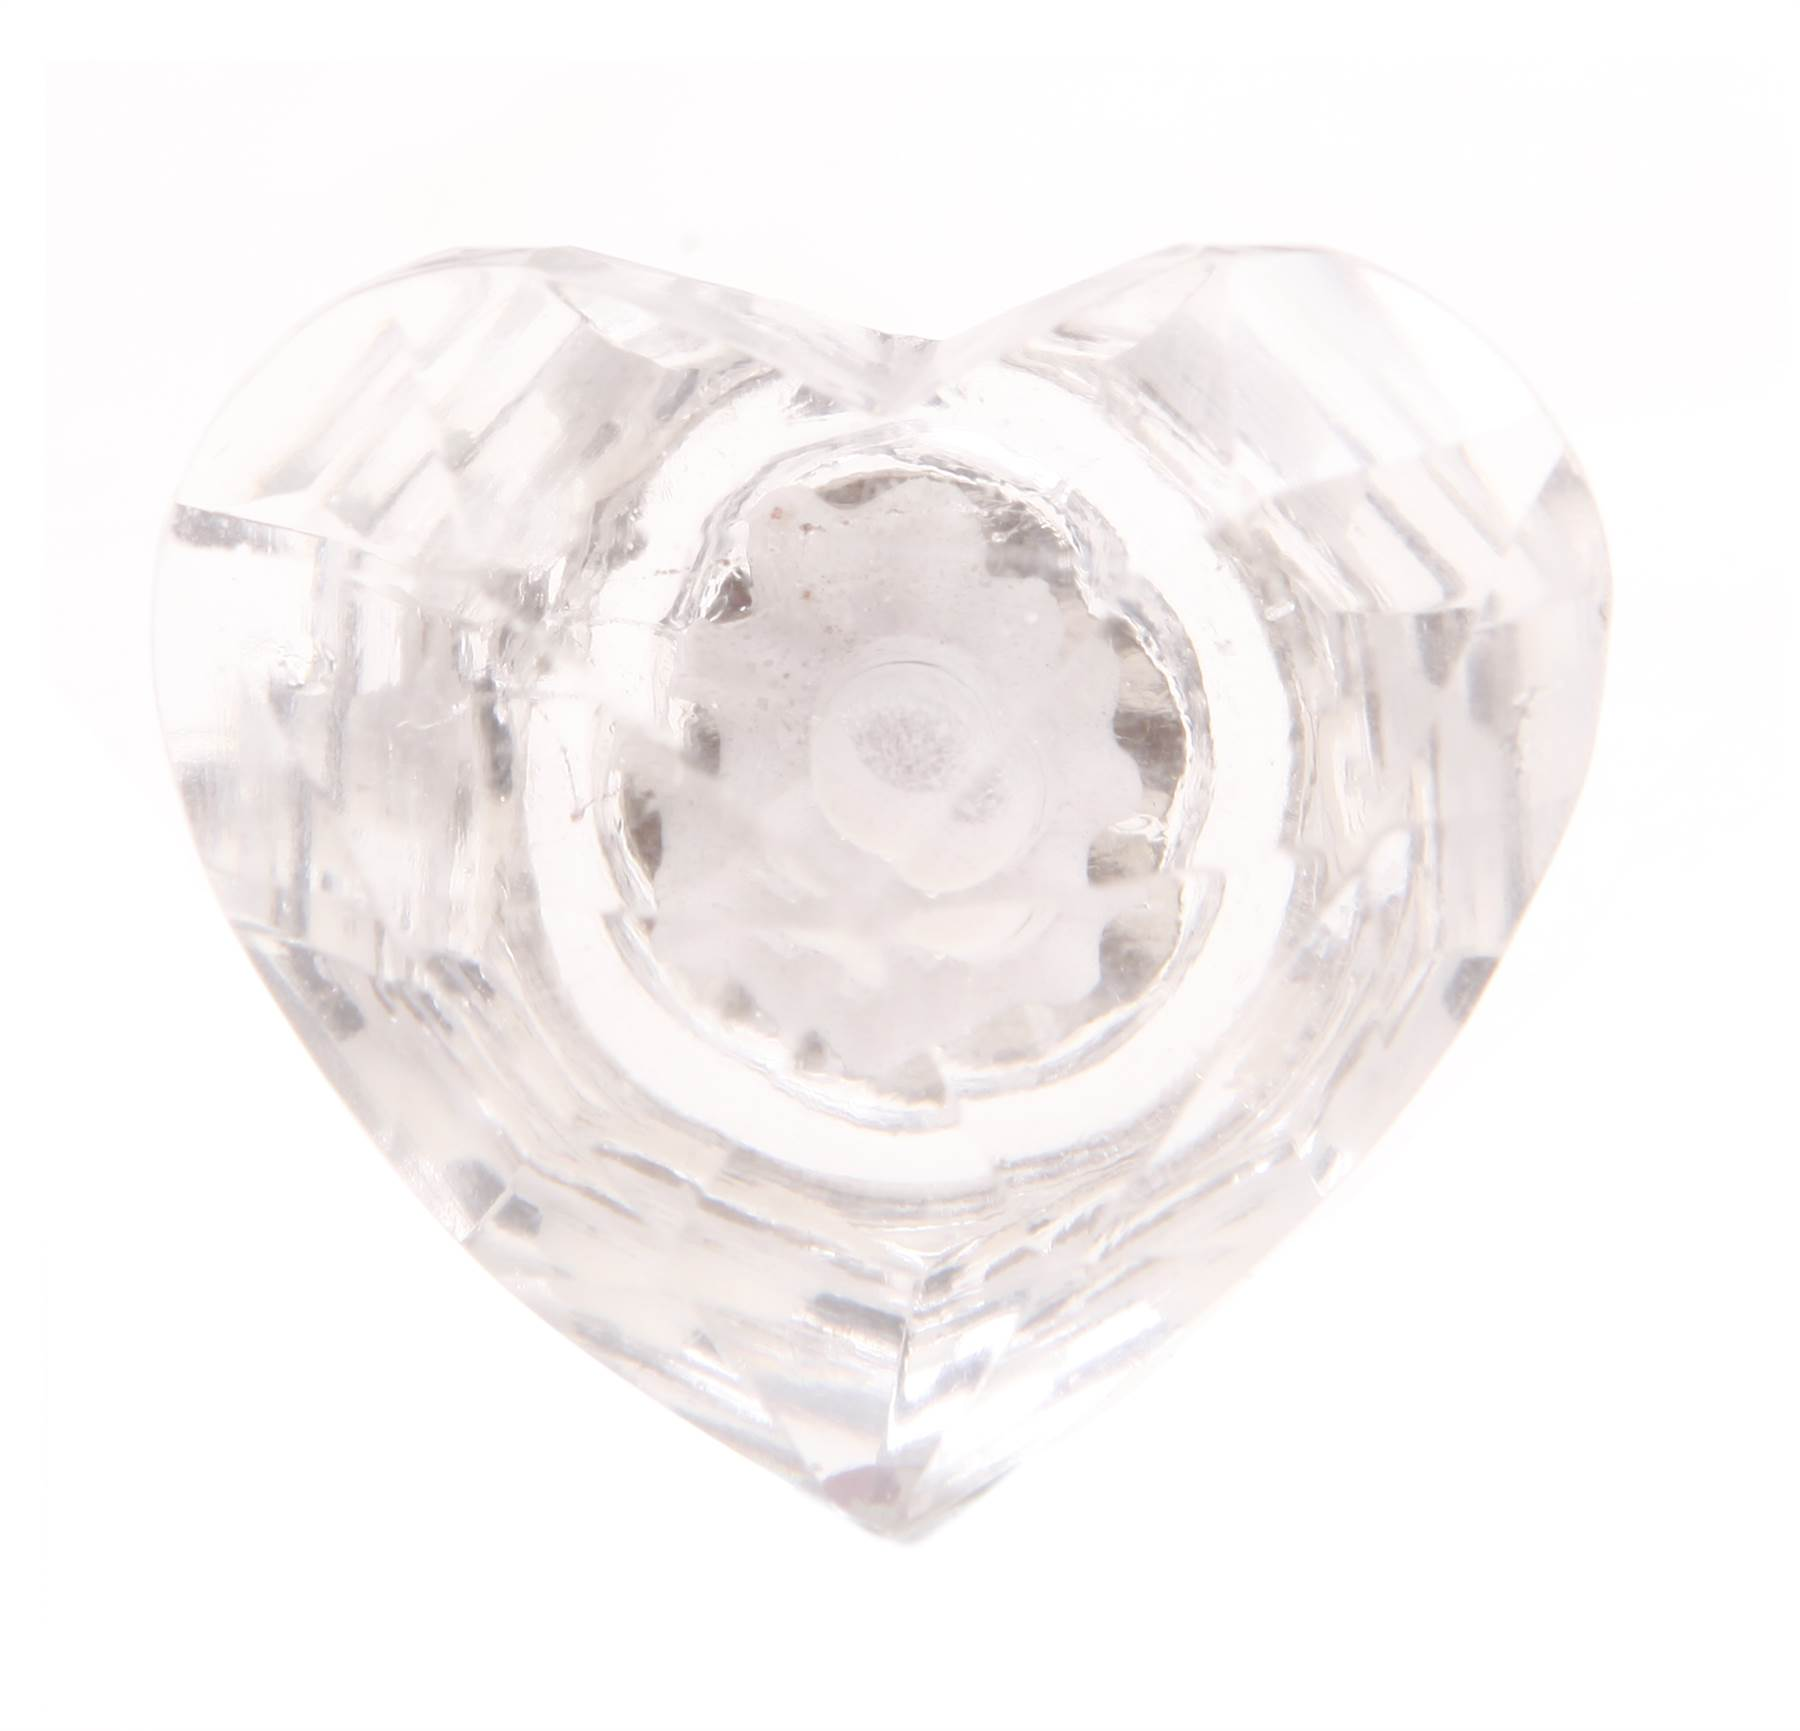 Vintage-Cut-GLASS-HEART-DOOR-KNOBS-Stunning-Furniture-Drawer-pulls-Handles